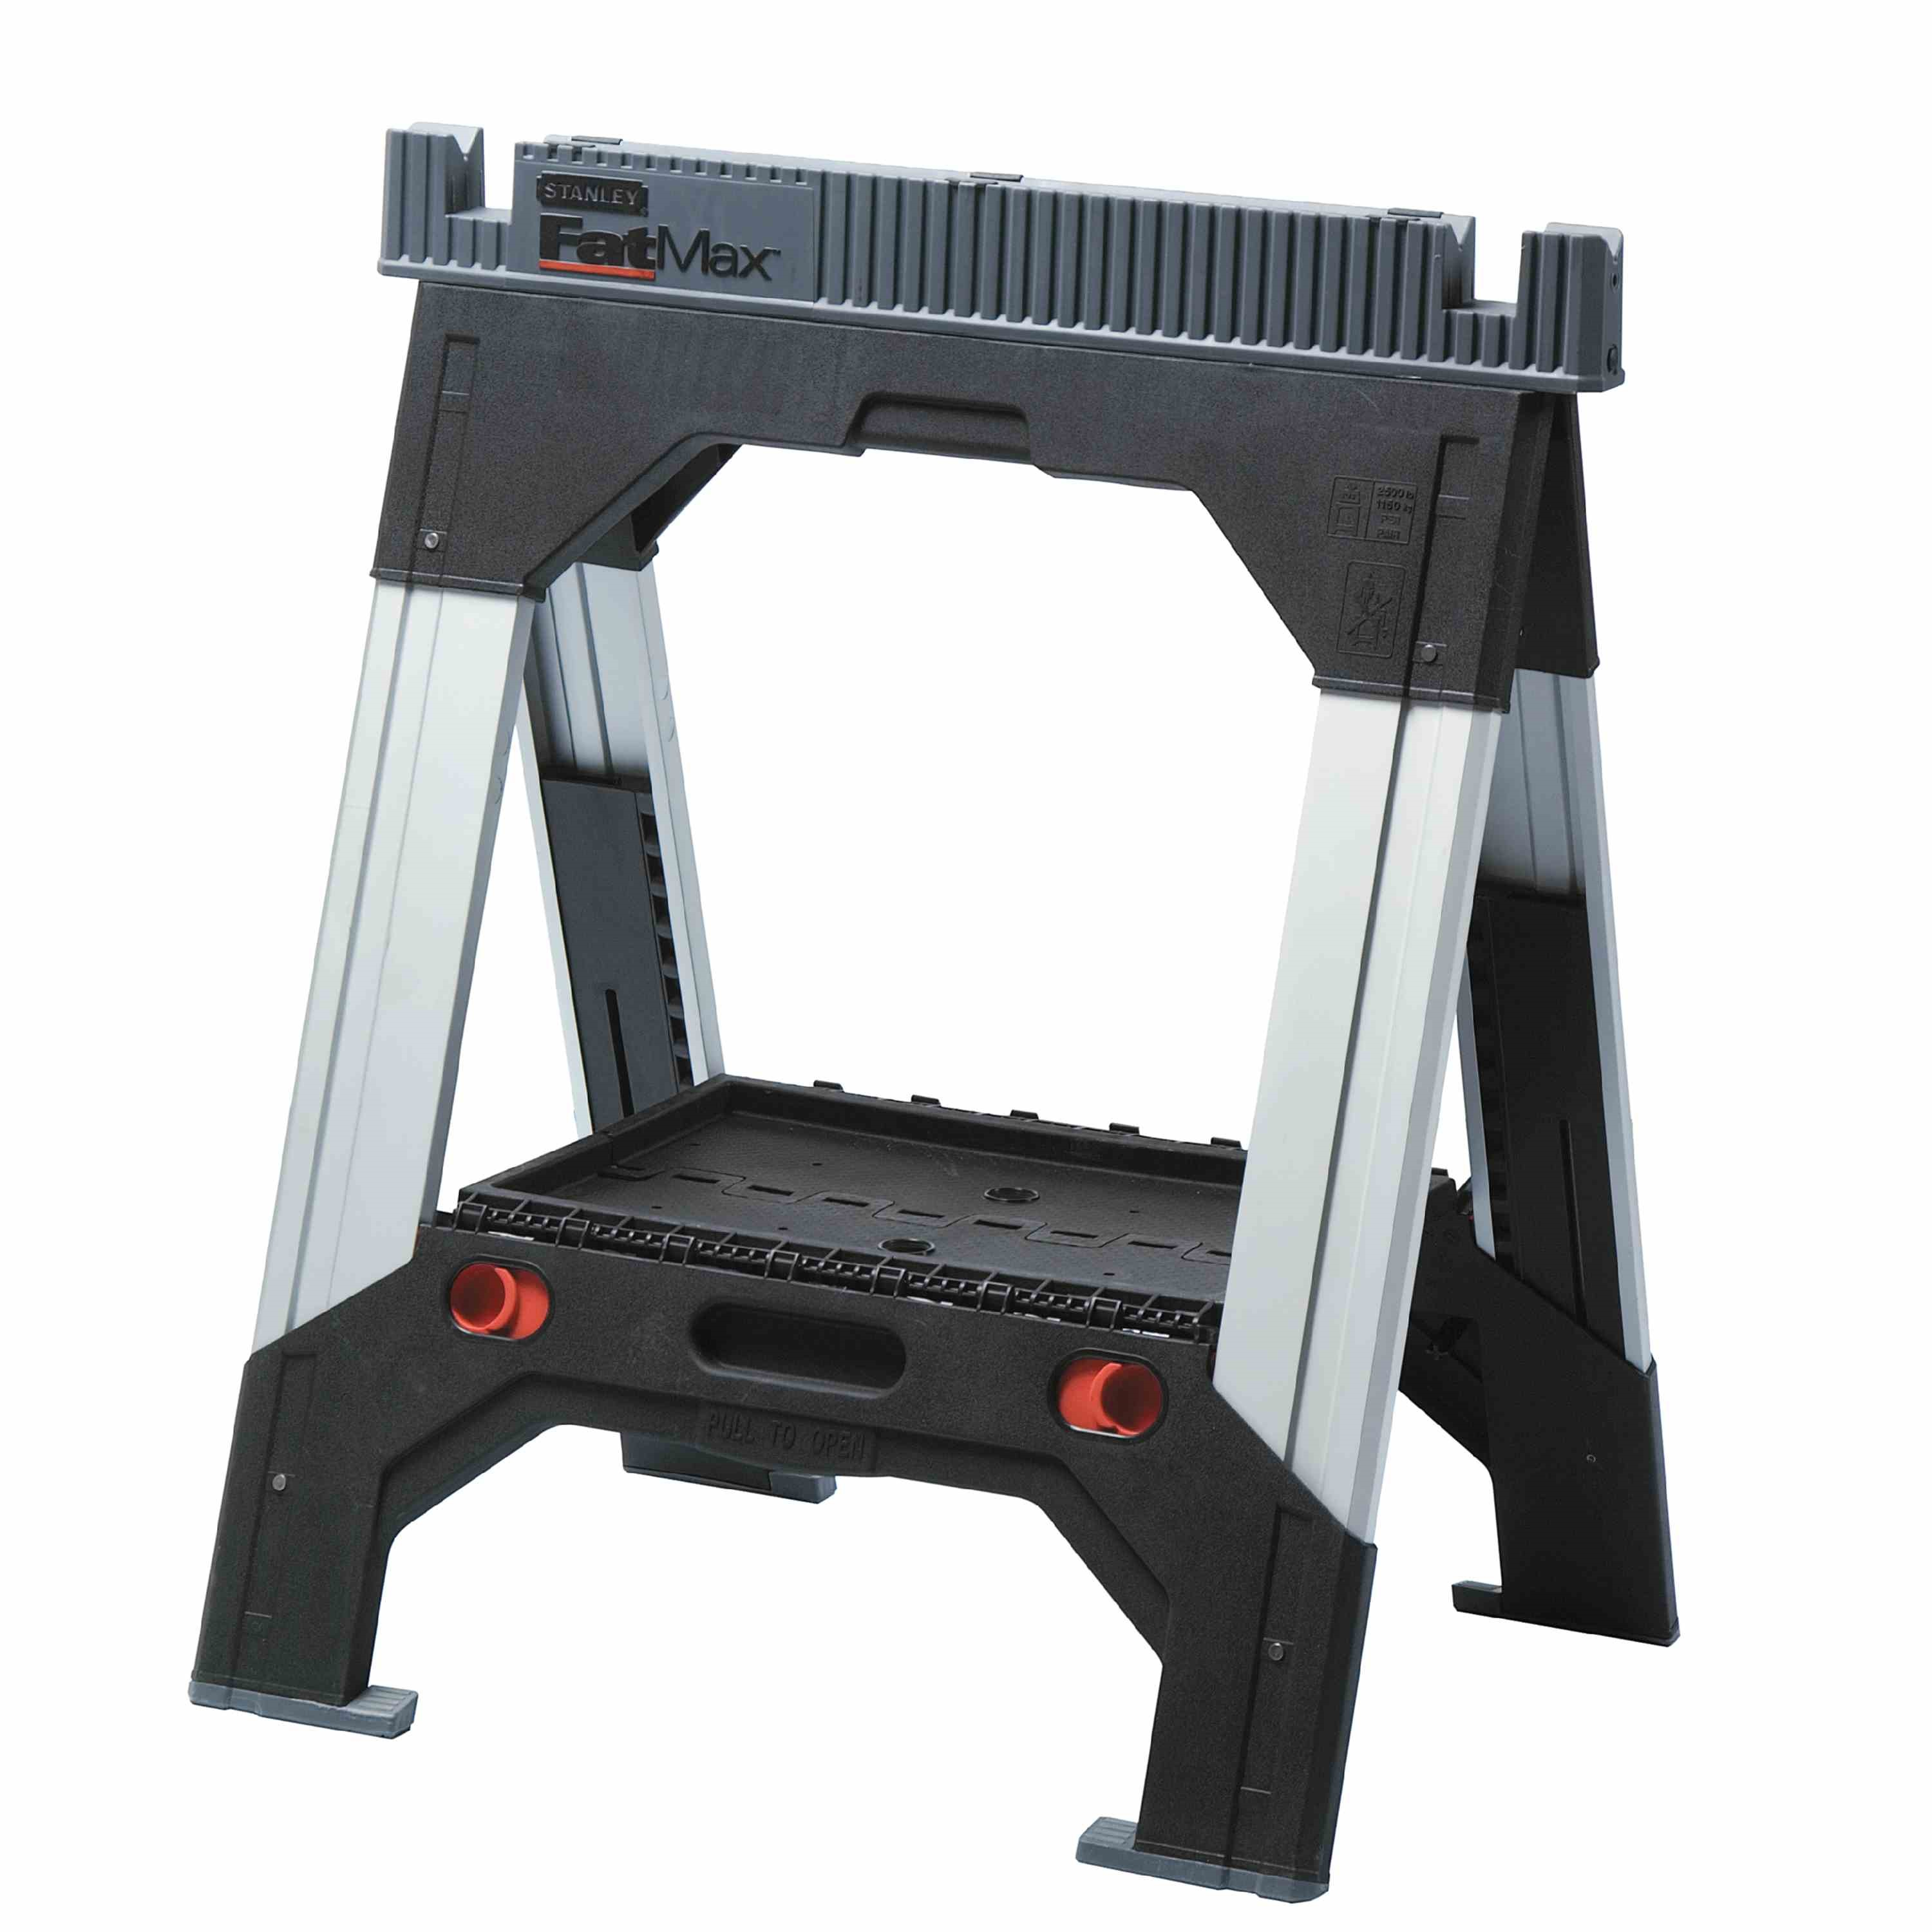 Stanley Tools - FATMAX Adjustable Leg Sawhorse - 011031S